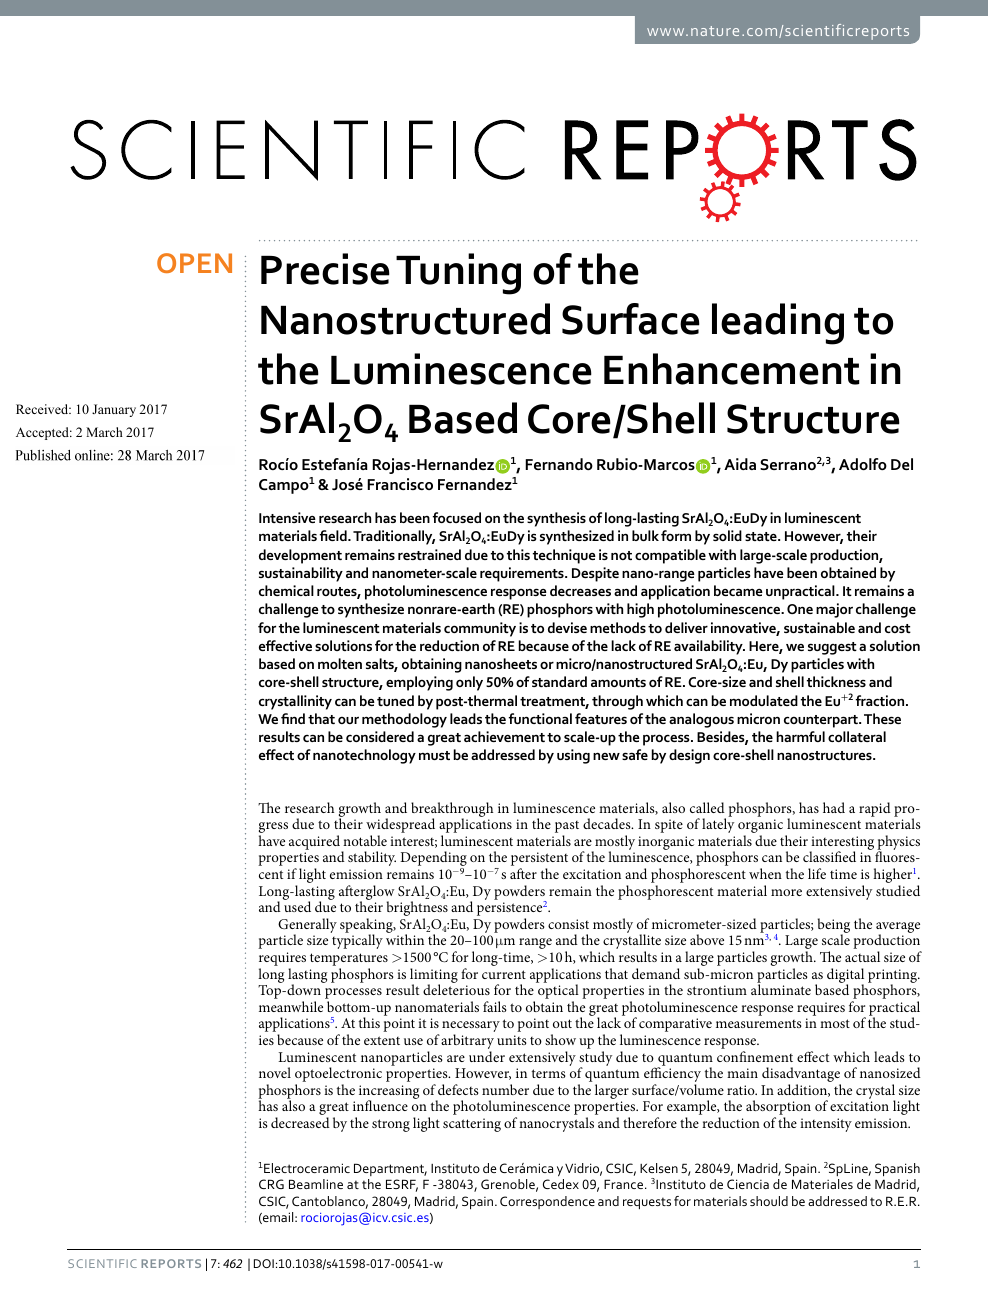 Precise Tuning of the Nanostructured Surface leading to the